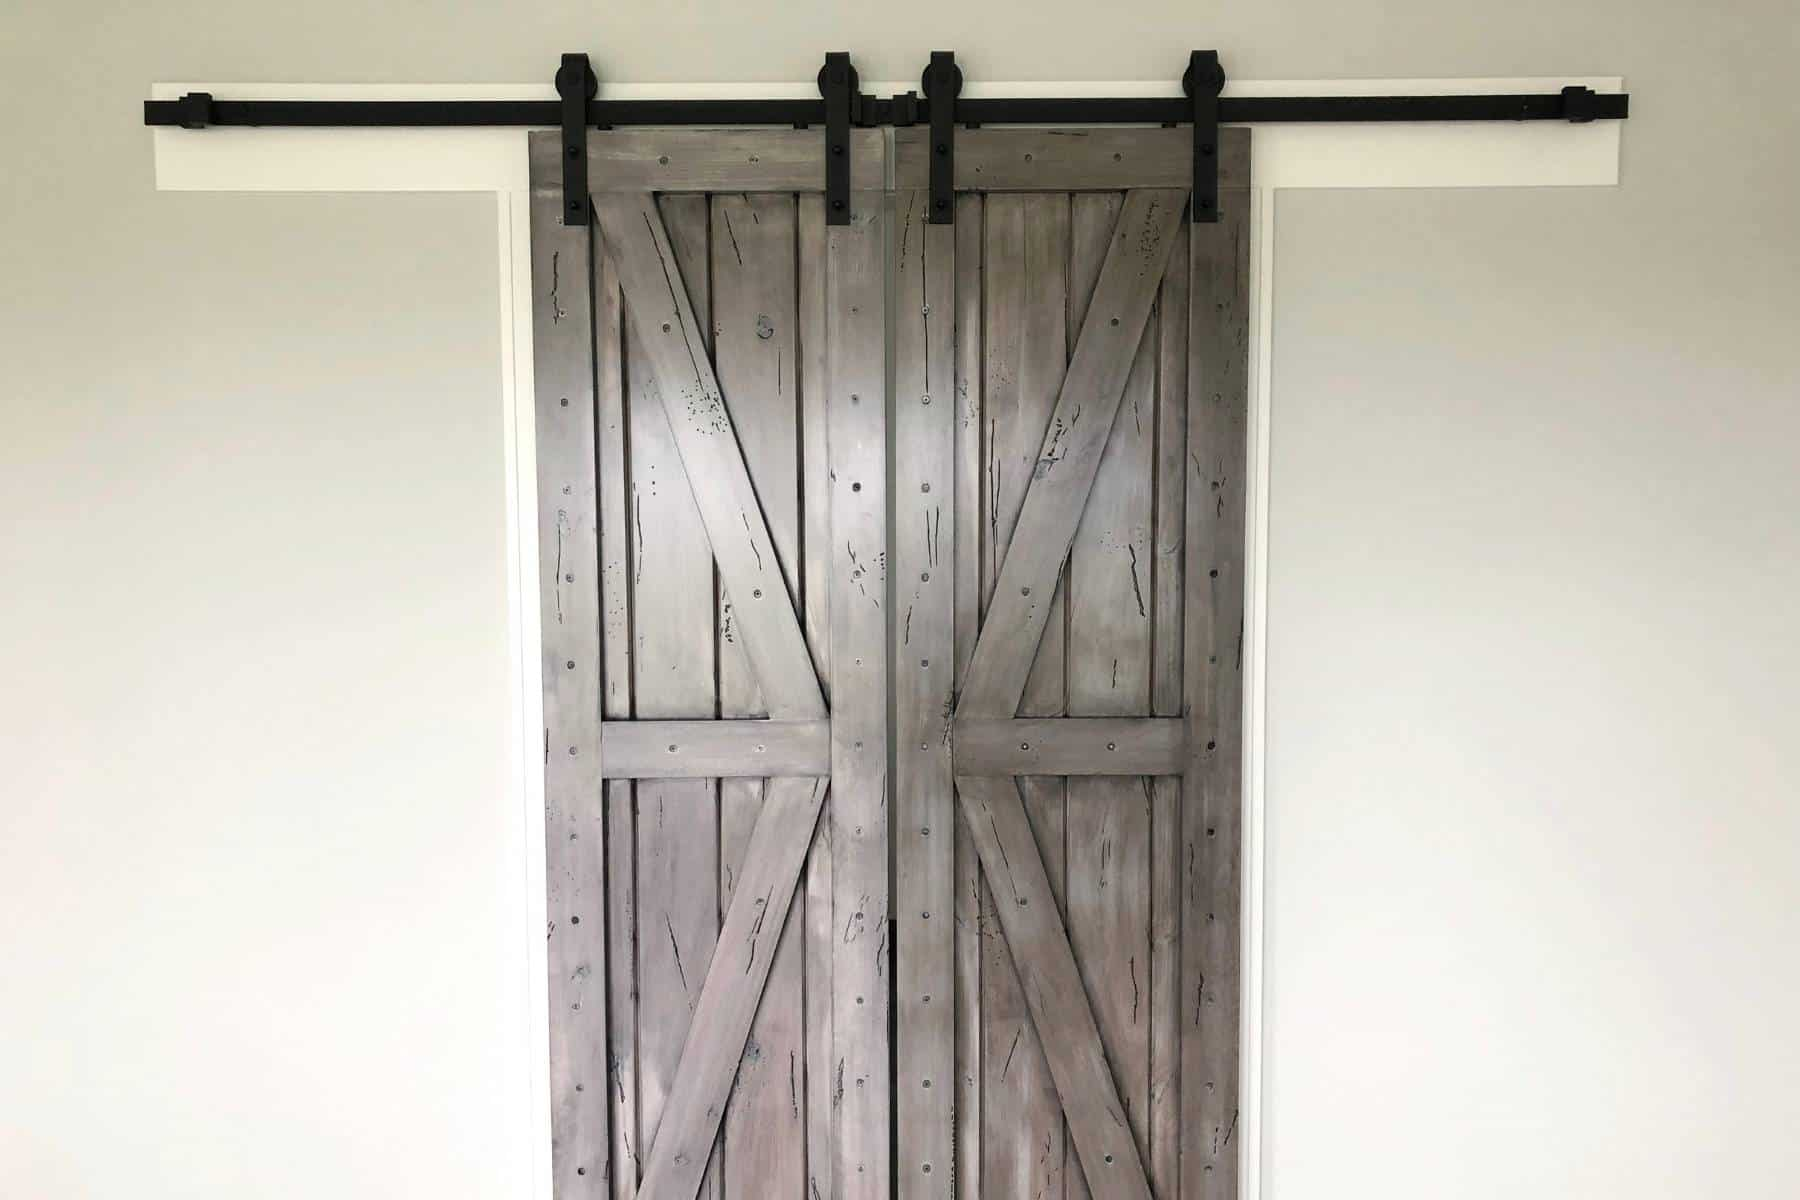 How to add Bathroom Privacy to Barn Door